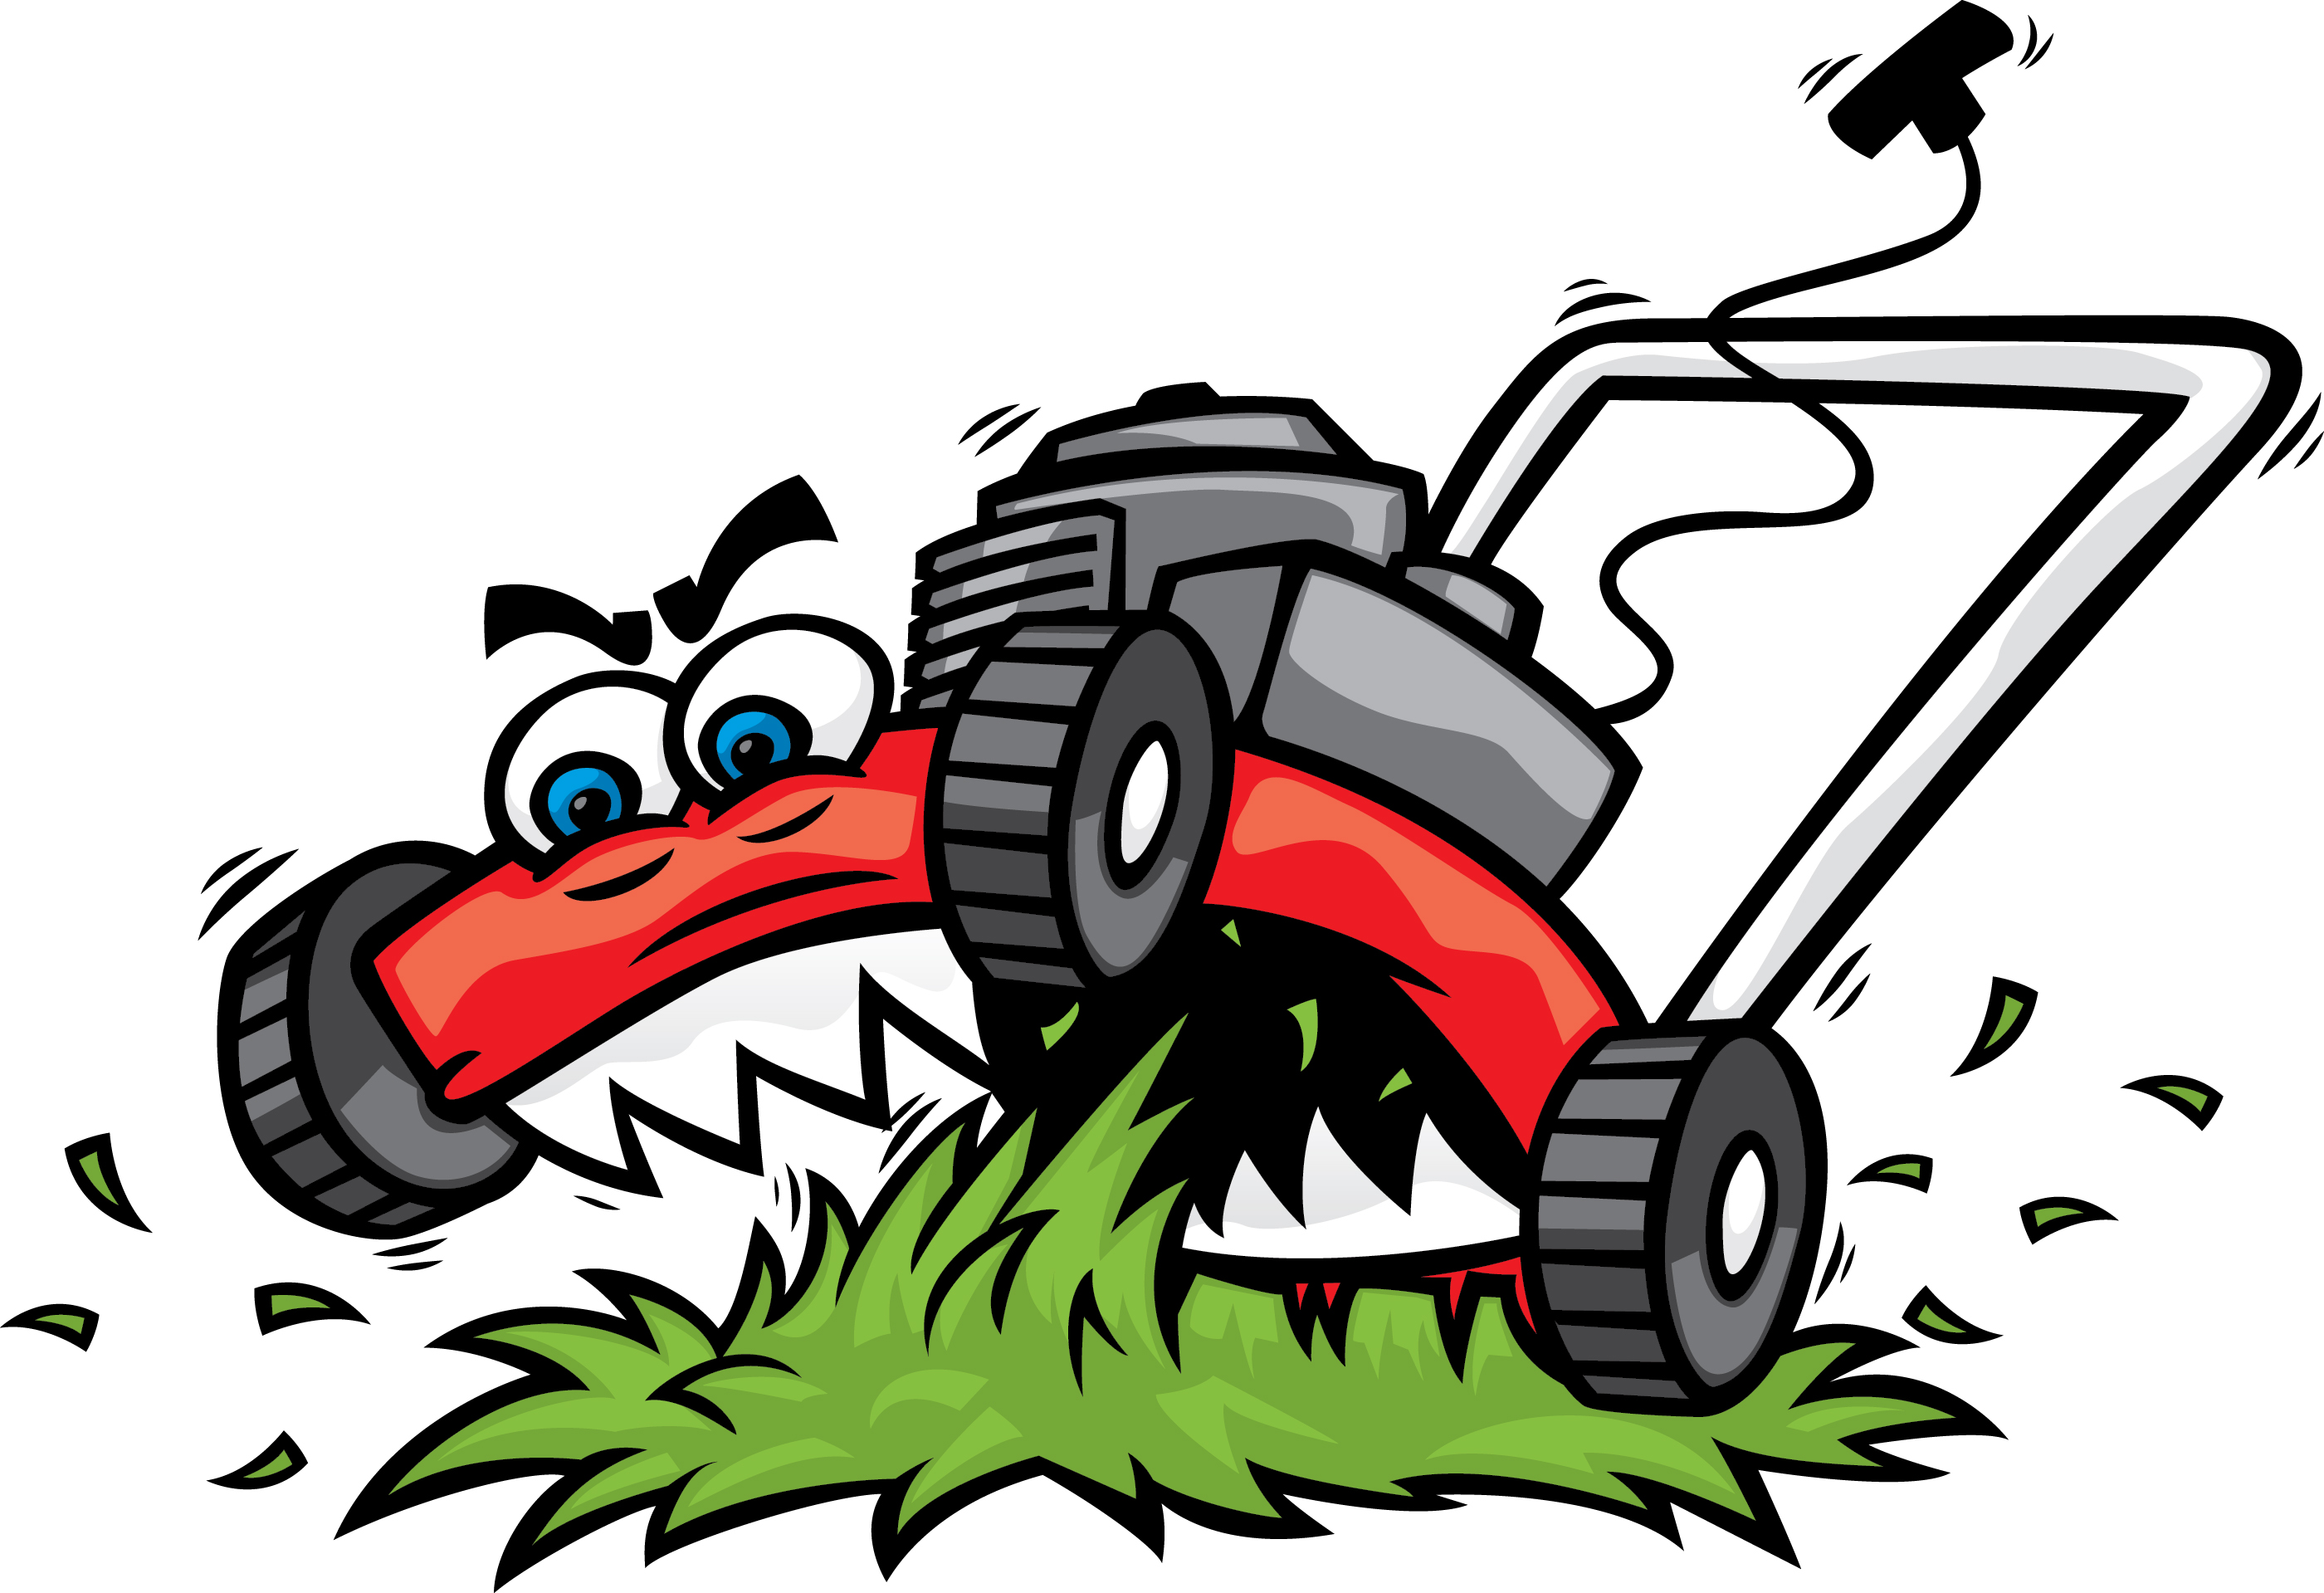 Mowing clipart lawn equipment. Care free download best